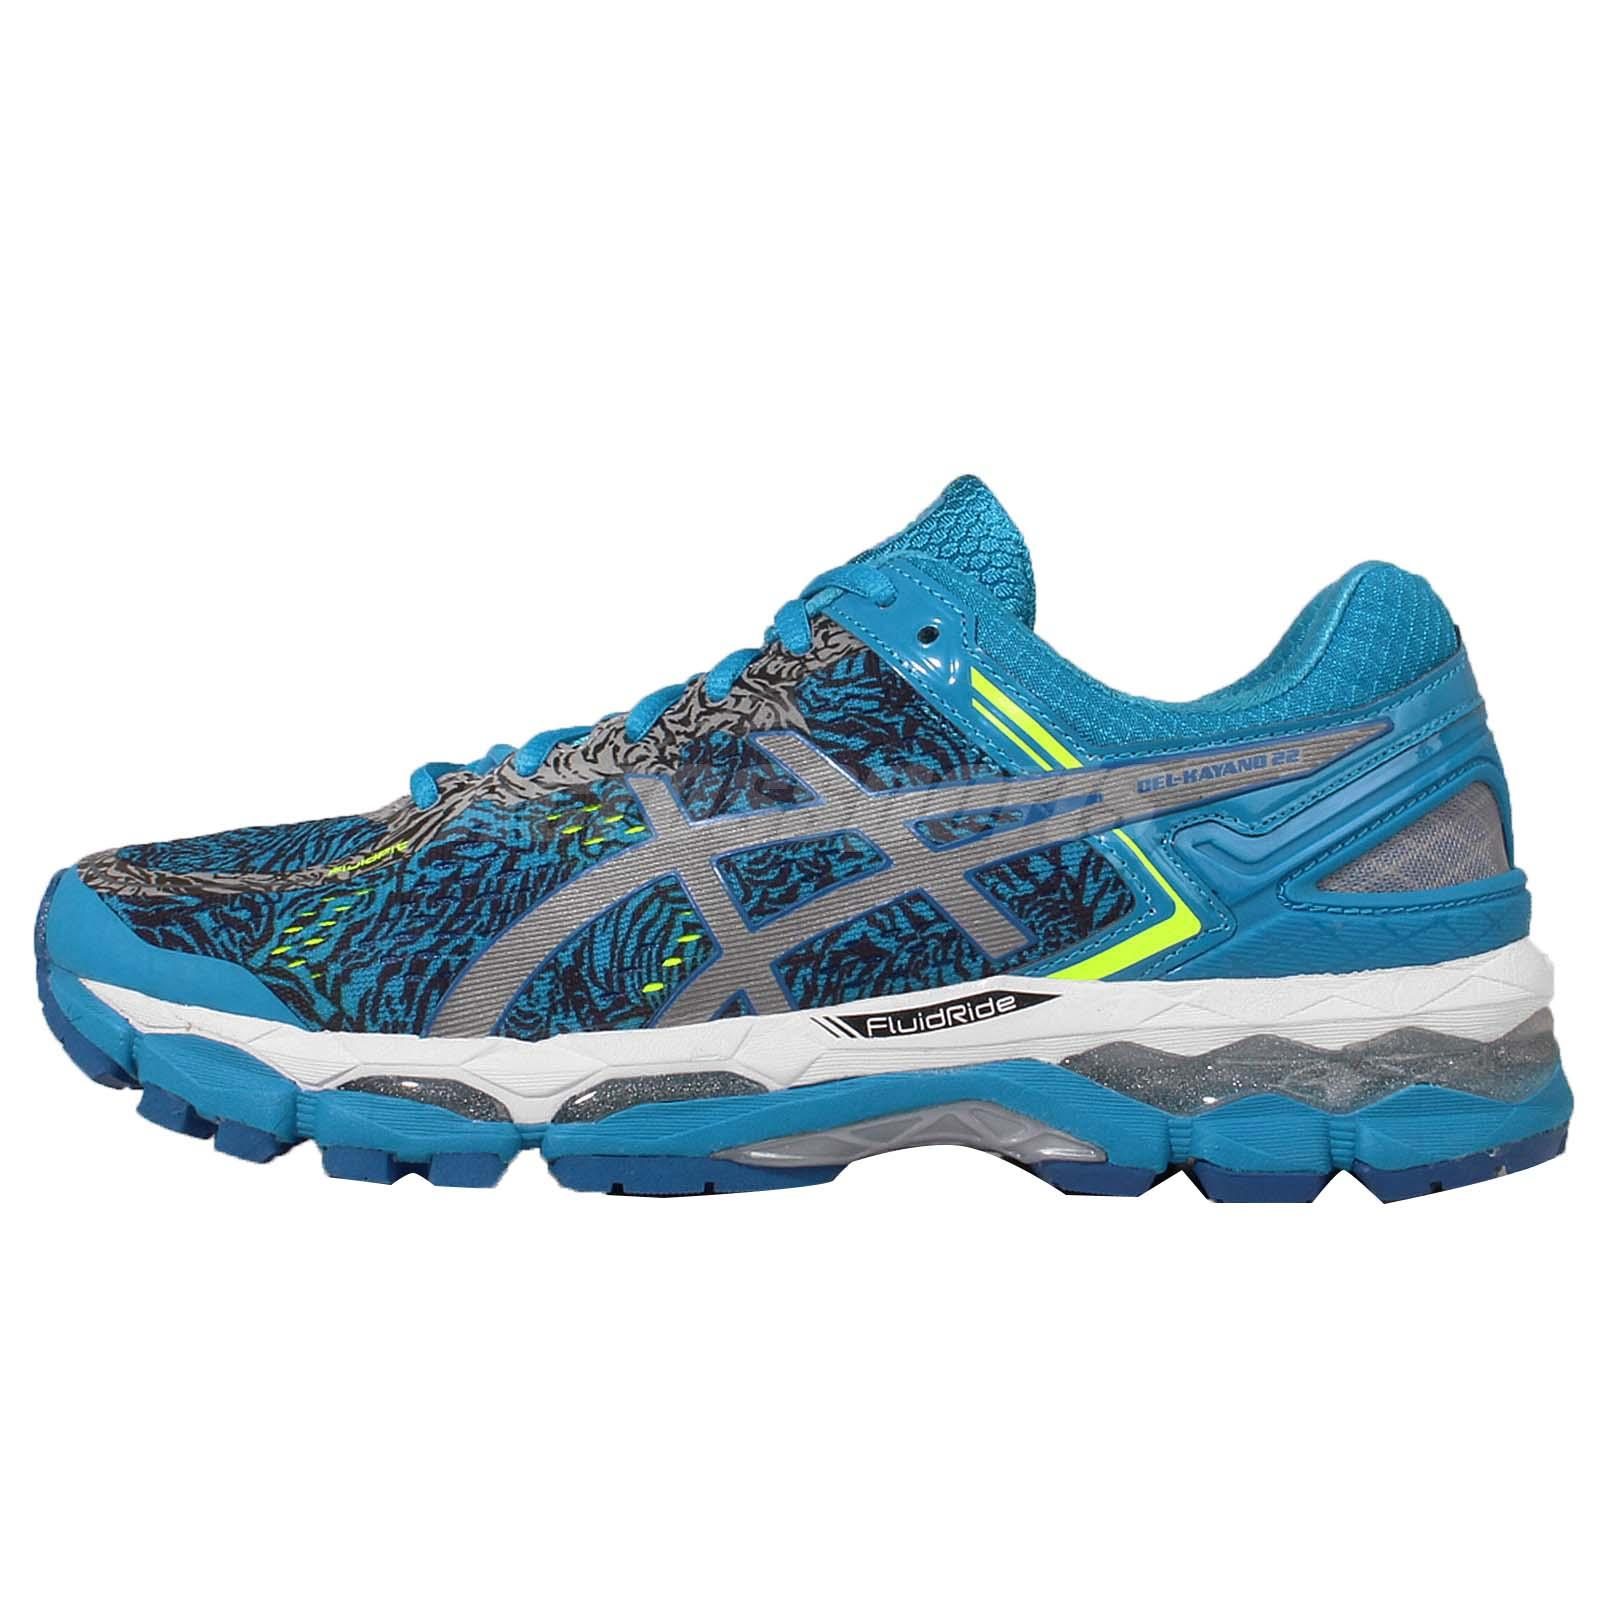 Asics Gel Kayano 22 Lite Show Blue Silver Mens Running Shoes Trainers T5A1Q 4193